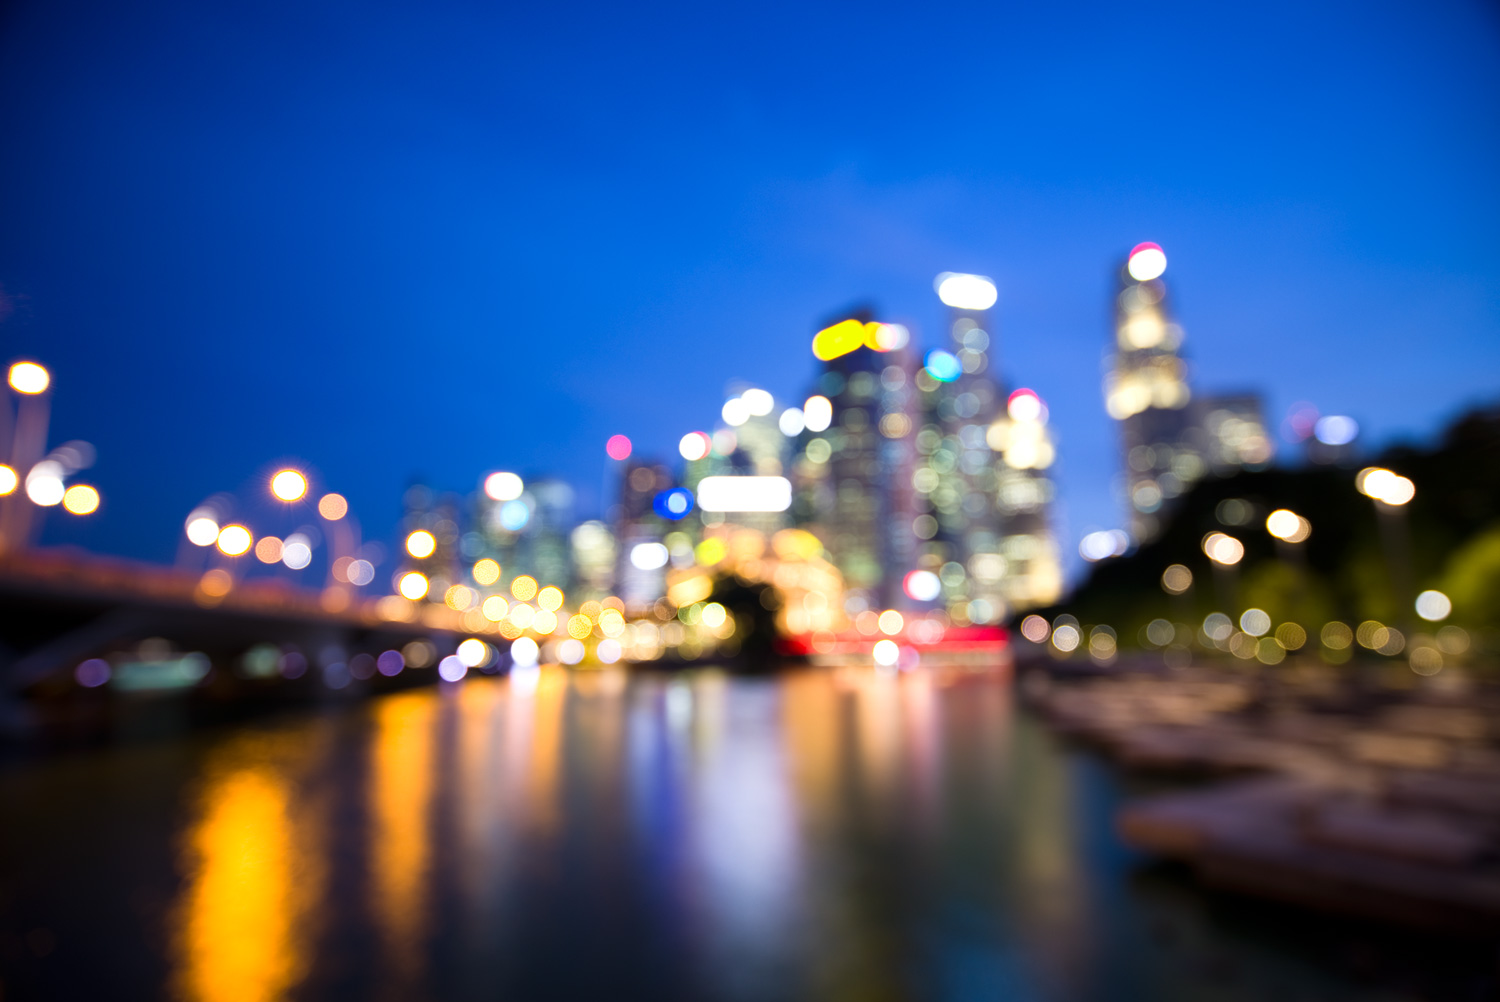 Singapore out of focus - Out of Focus Cityscape Bokeh Images at Blue Hour